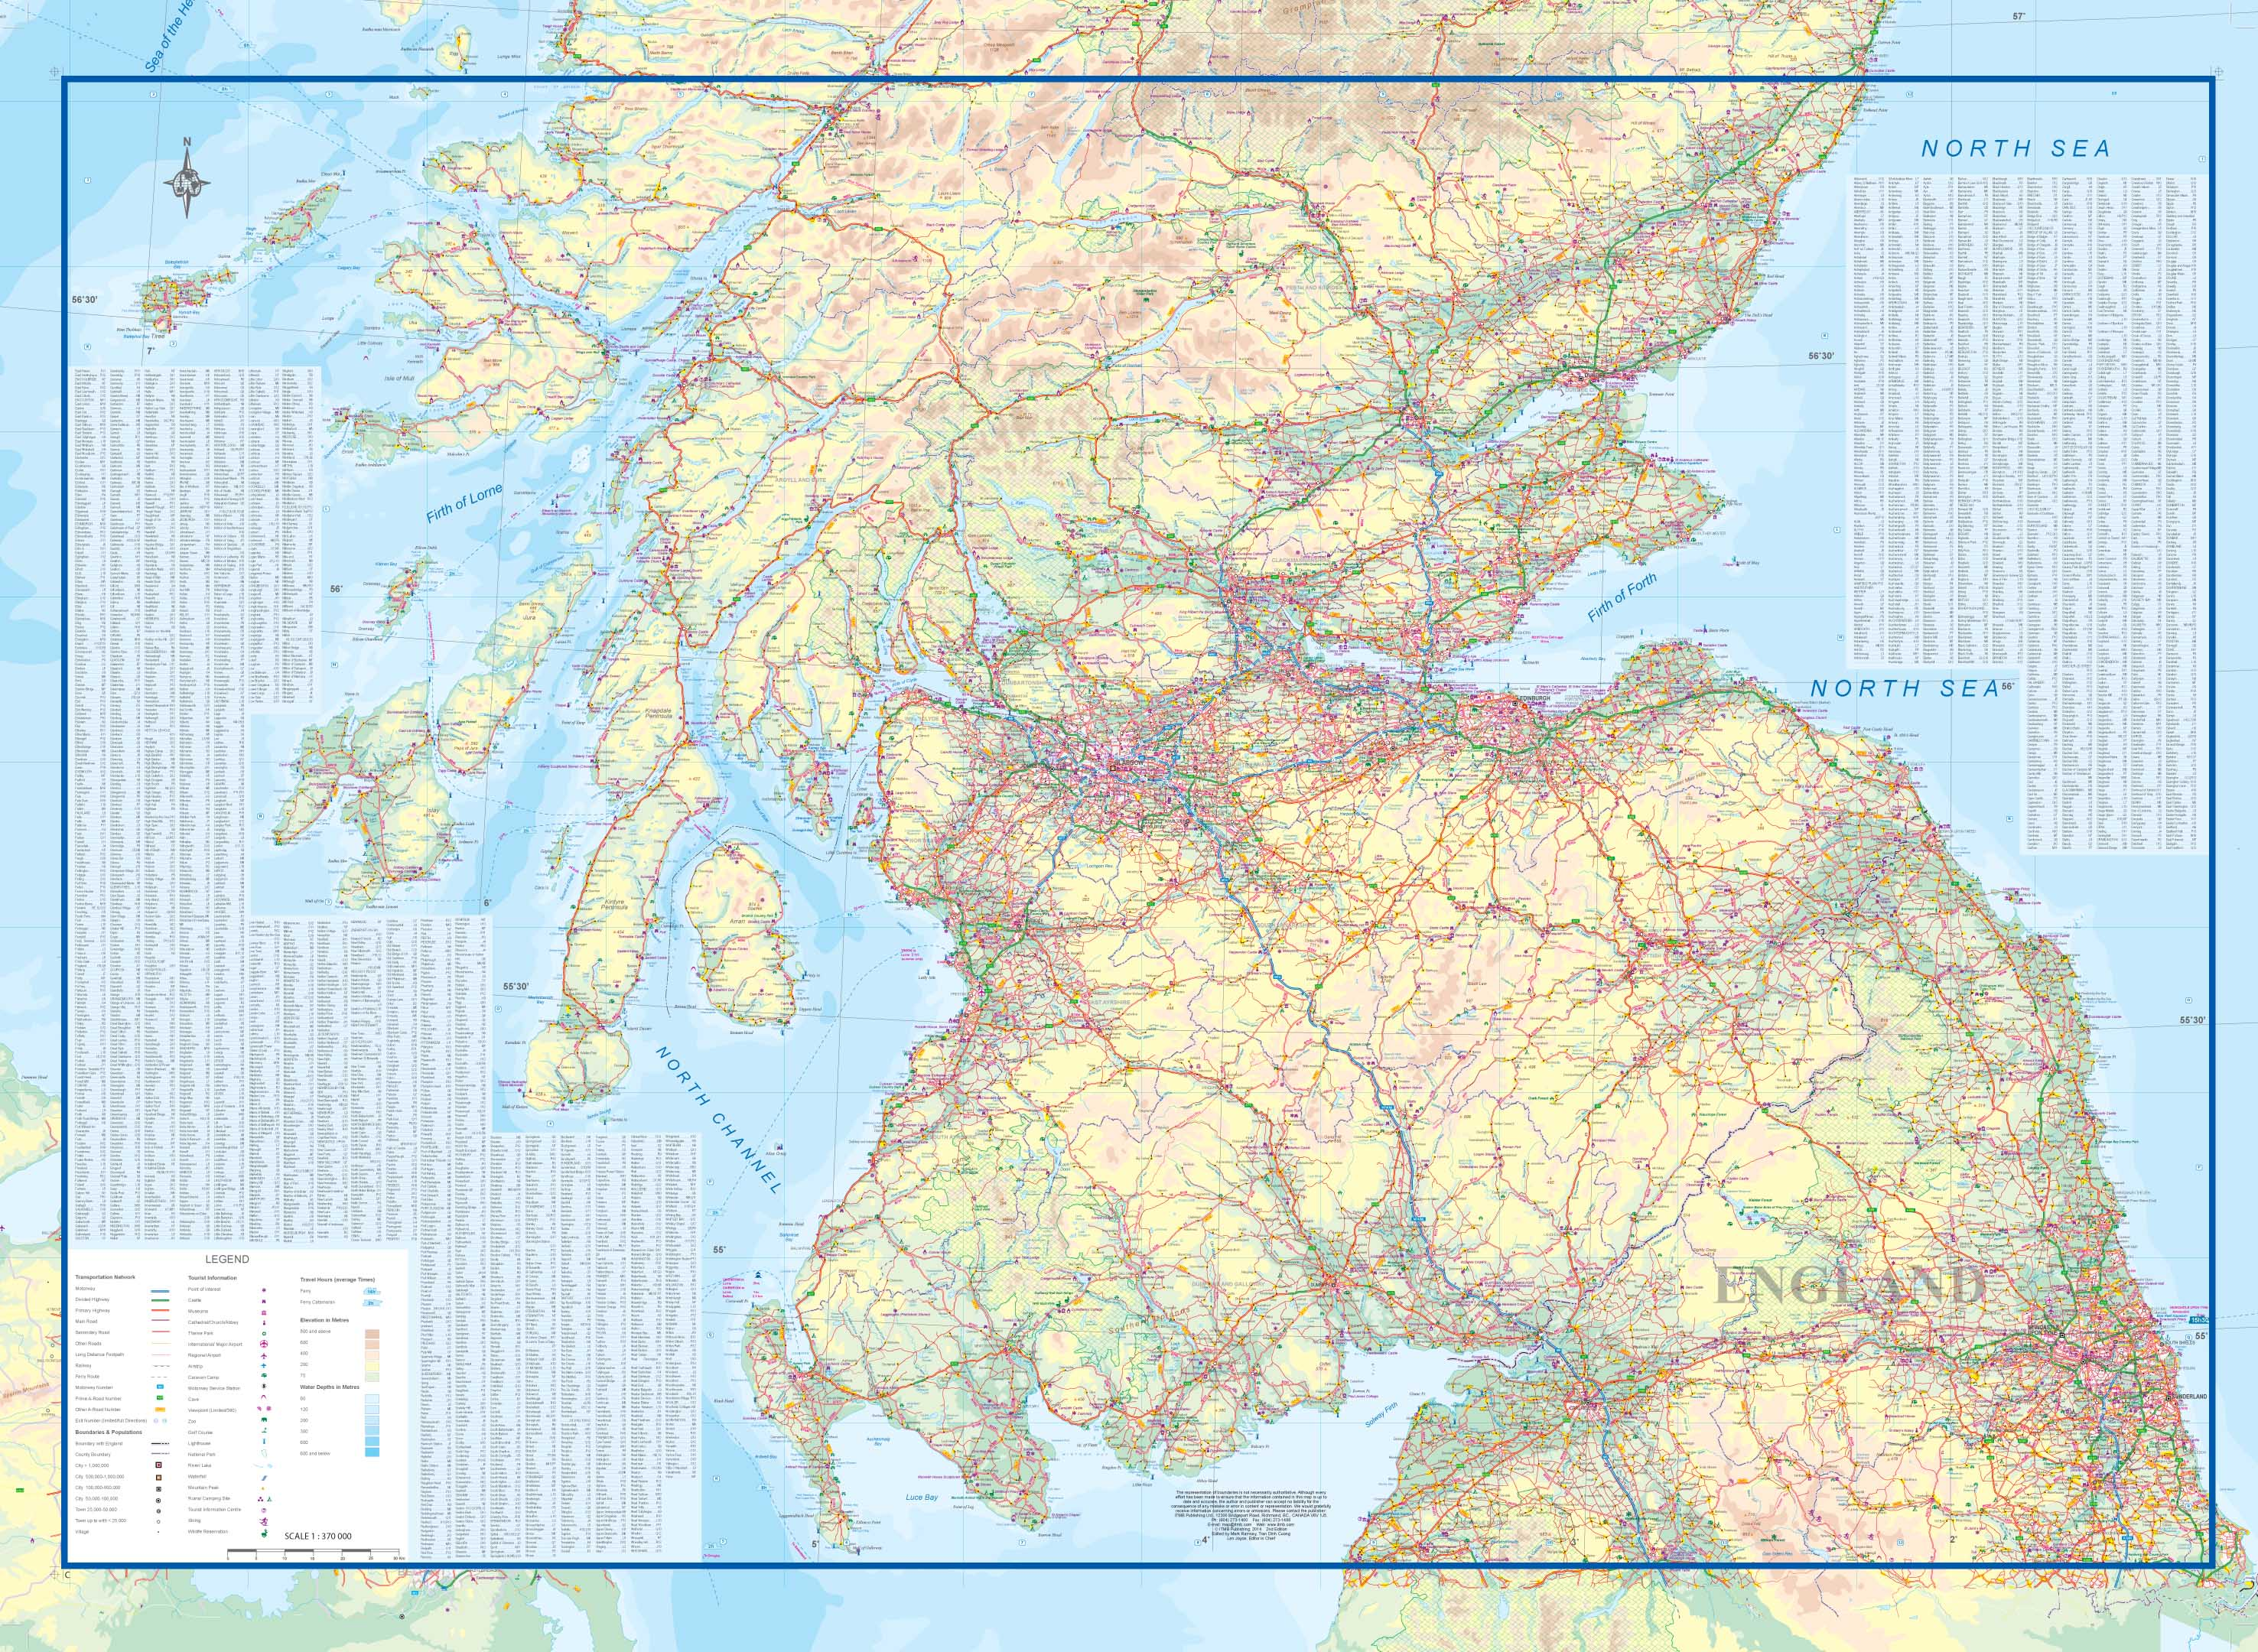 Maps for travel City Maps Road Maps Guides Globes Topographic – Scotland Travel Map